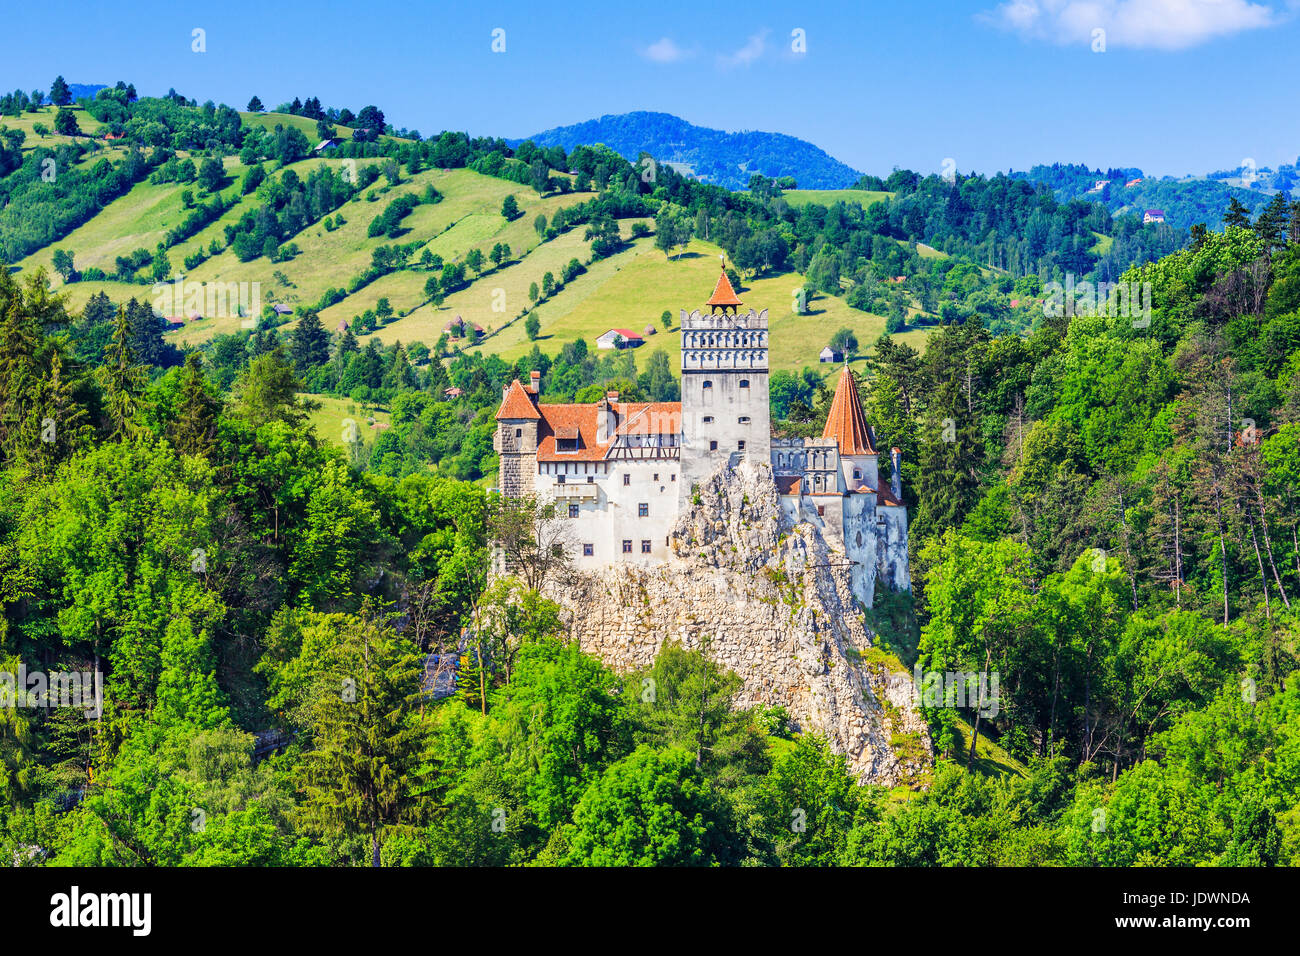 Brasov, Transylvania. Romania. The medieval Castle of Bran, known for the myth of Dracula. Stock Photo